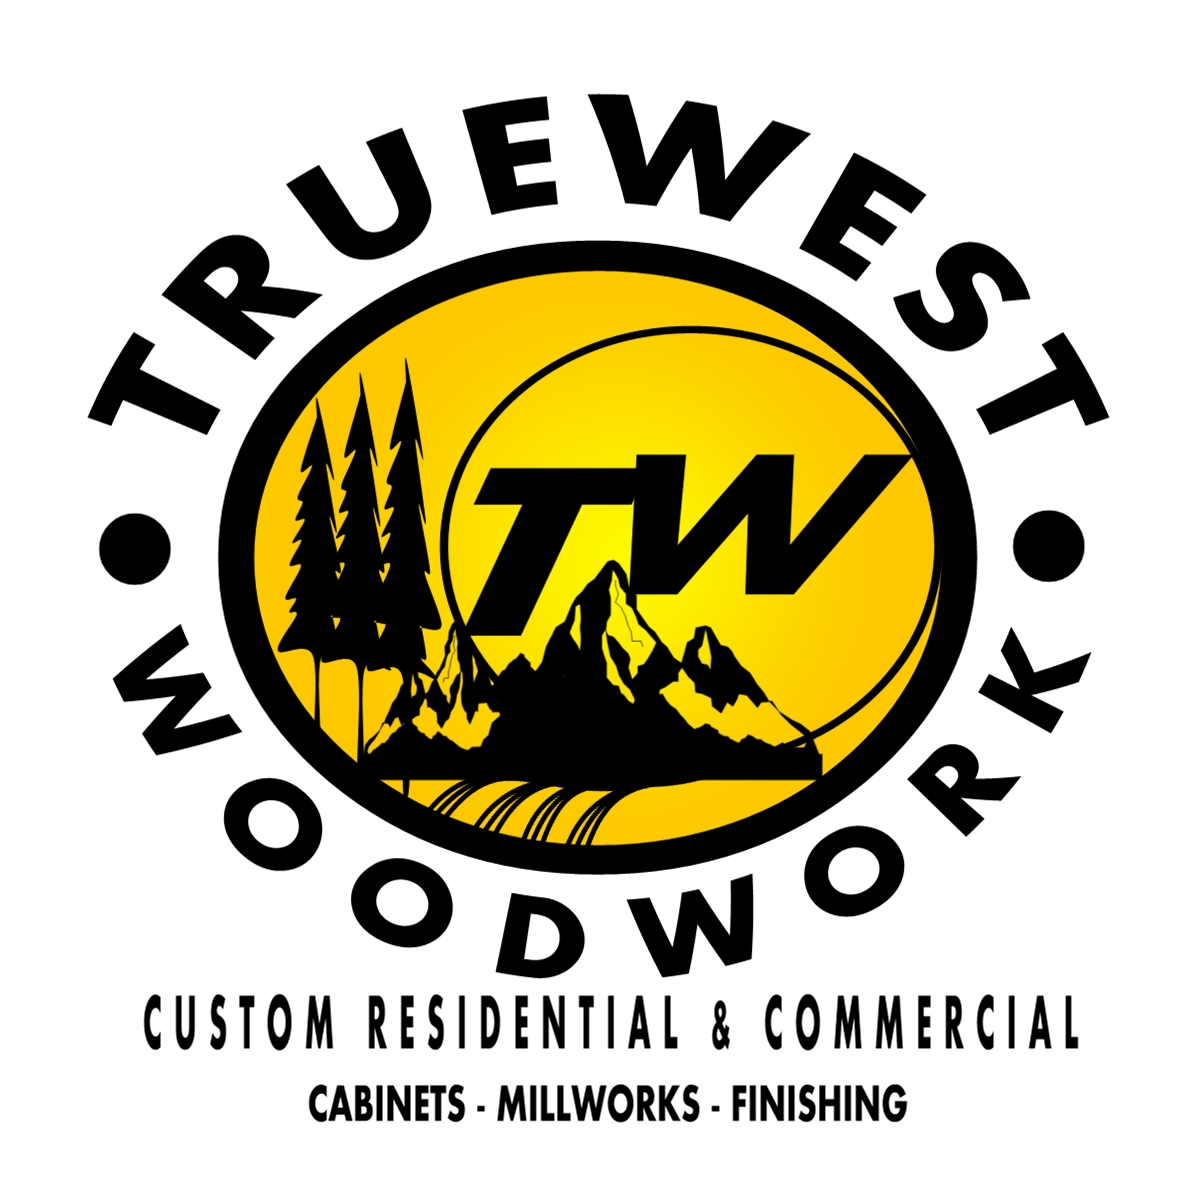 Logo Design by Joseph calunsag Cagaanan - Entry No. 54 in the Logo Design Contest True West Woodwork.